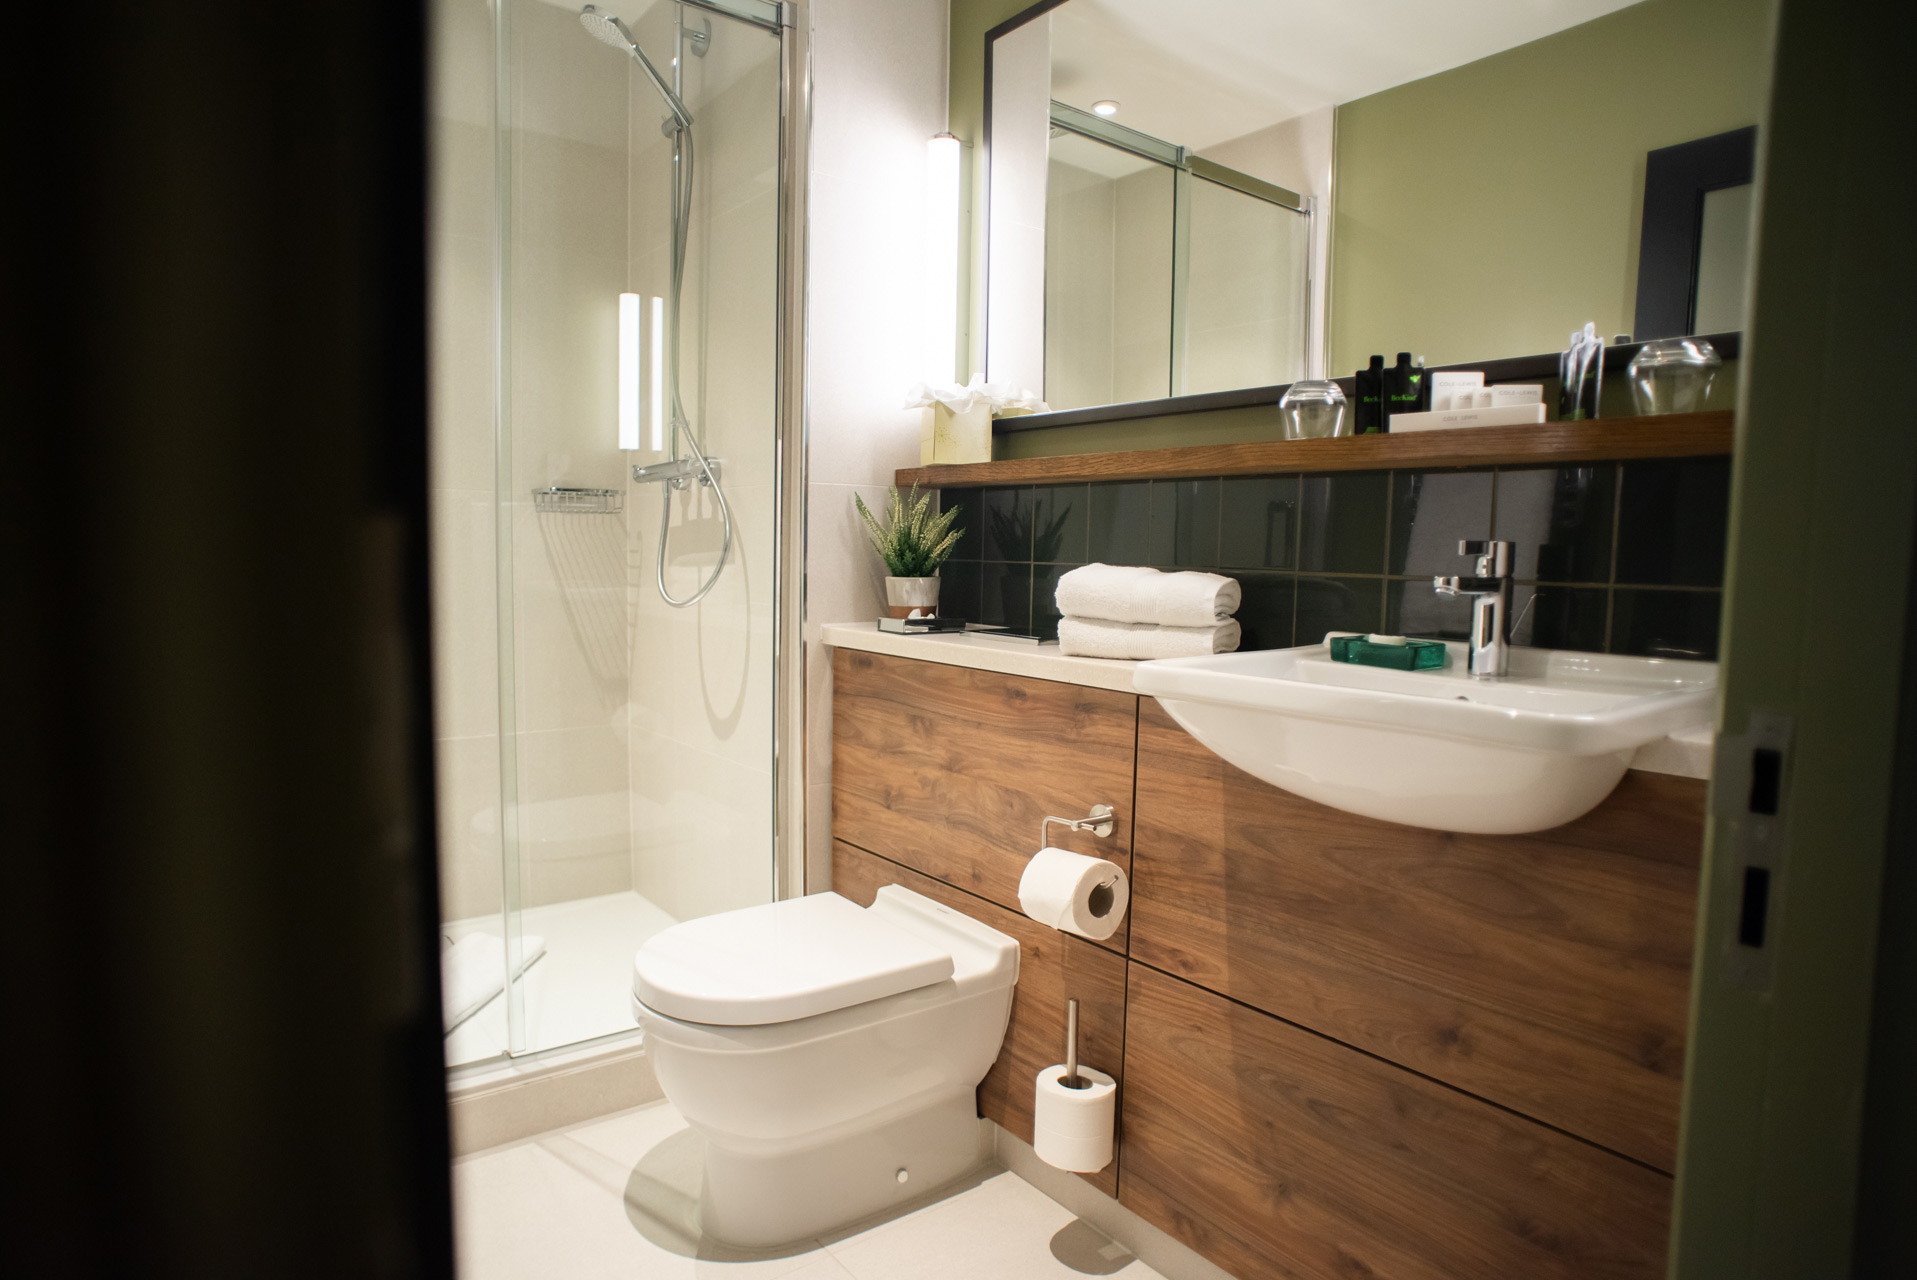 The-Counting-House-Superior-Bathroom.jpg